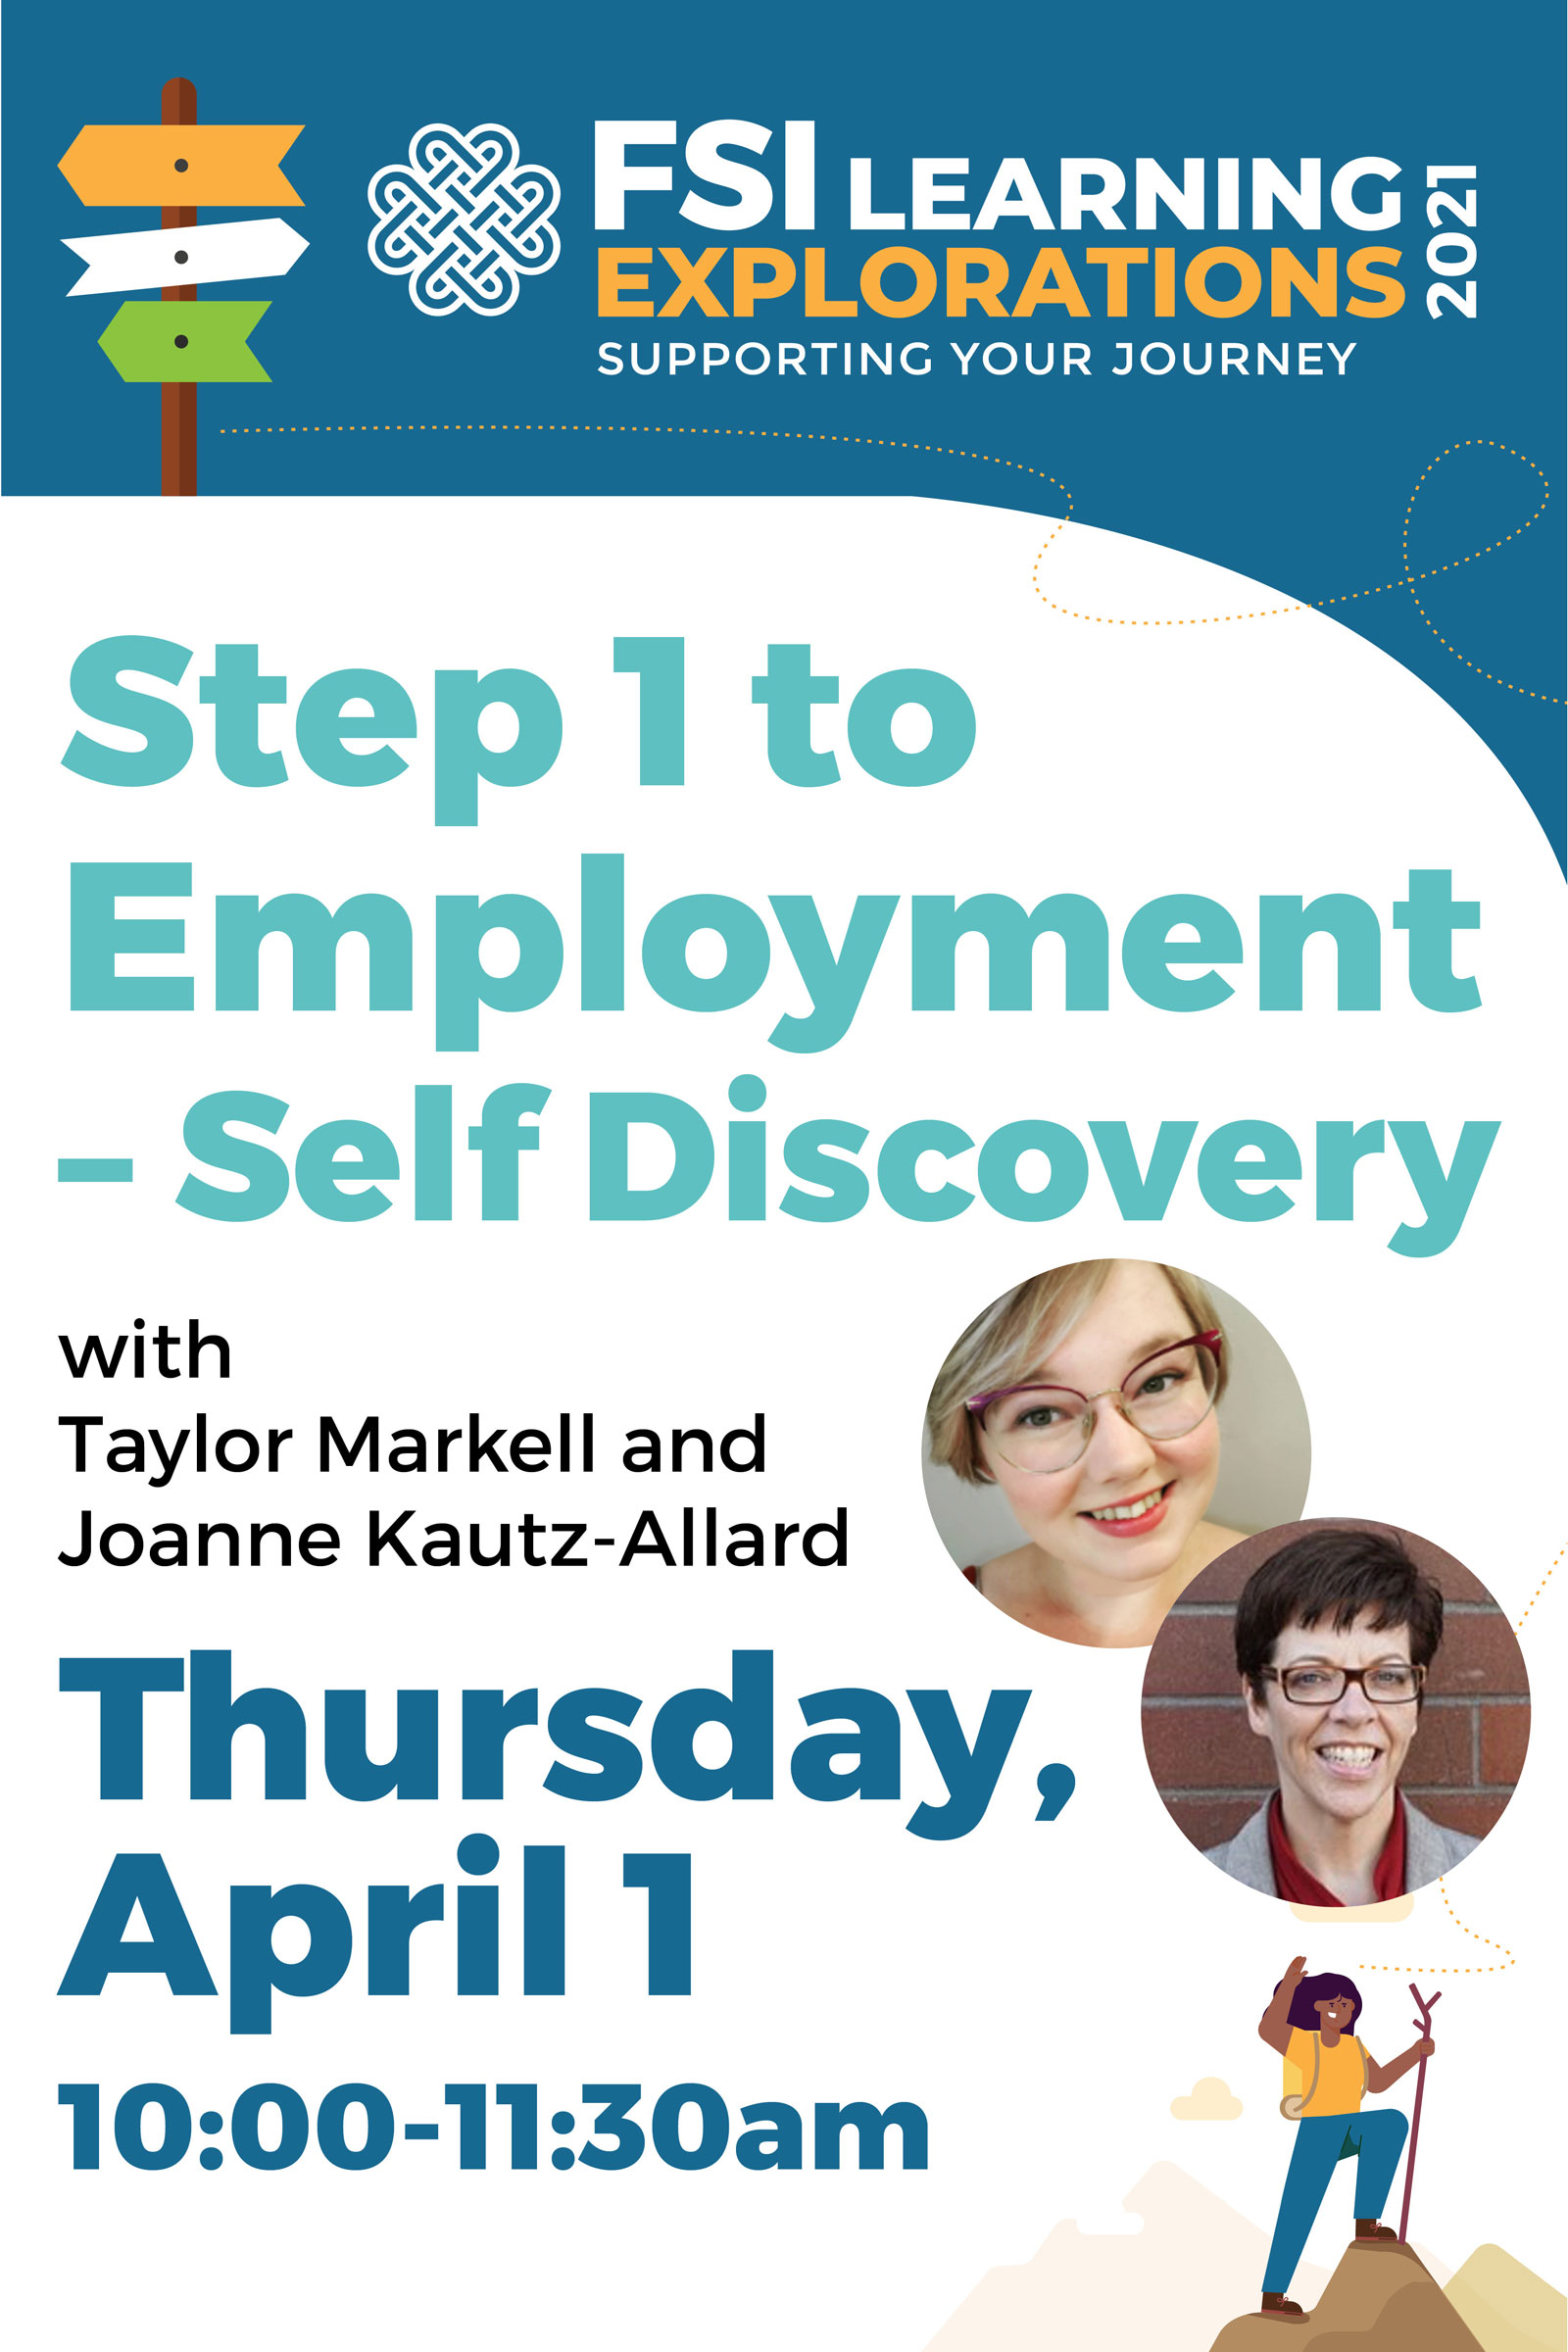 FSI Learning Explorations - Step 1 to Employment – Self Discovery